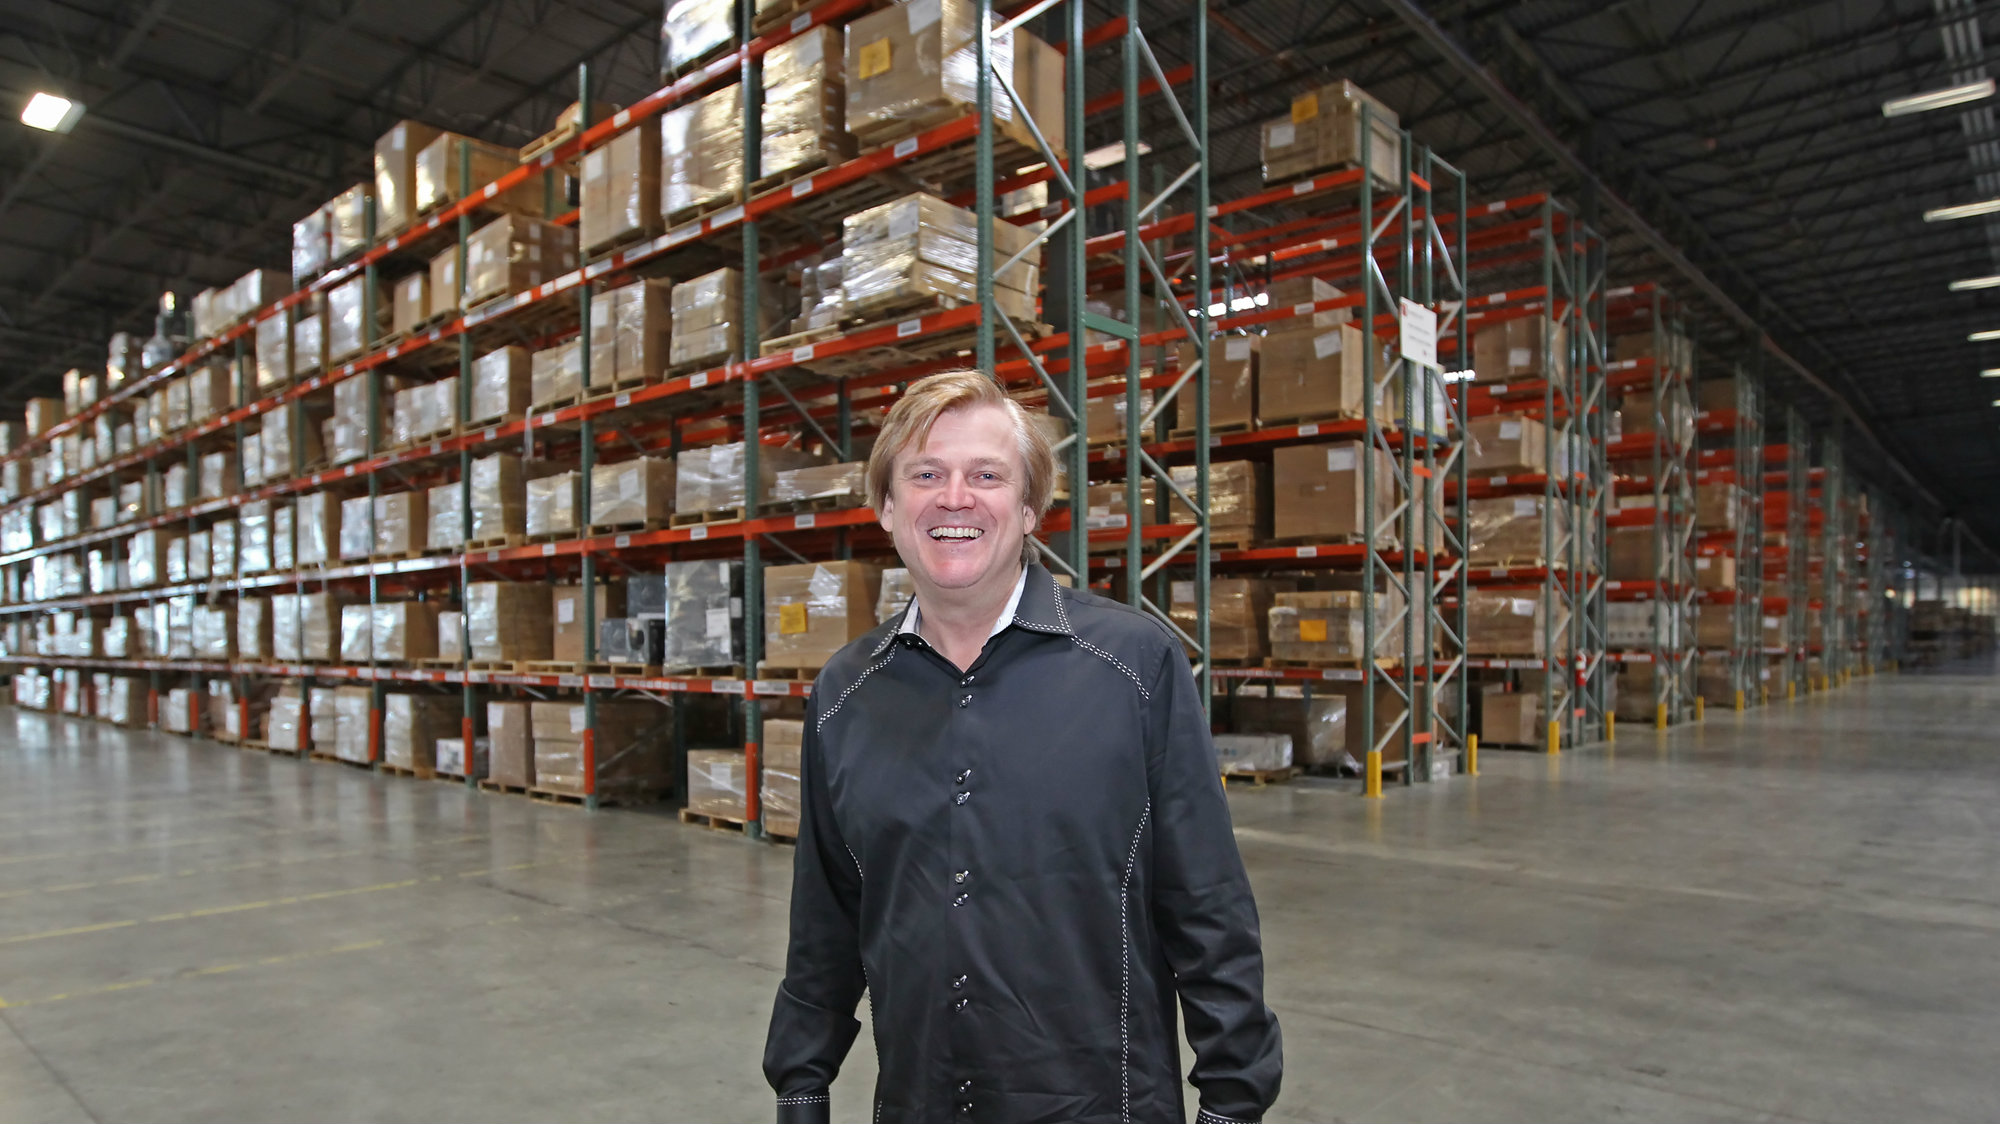 Chairman and CEO of OverStock.com Patrick M. Byrne poses for a picture in the warehouse of Overstock.com just outside Salt Lake City, Utah on March 25, 2010.